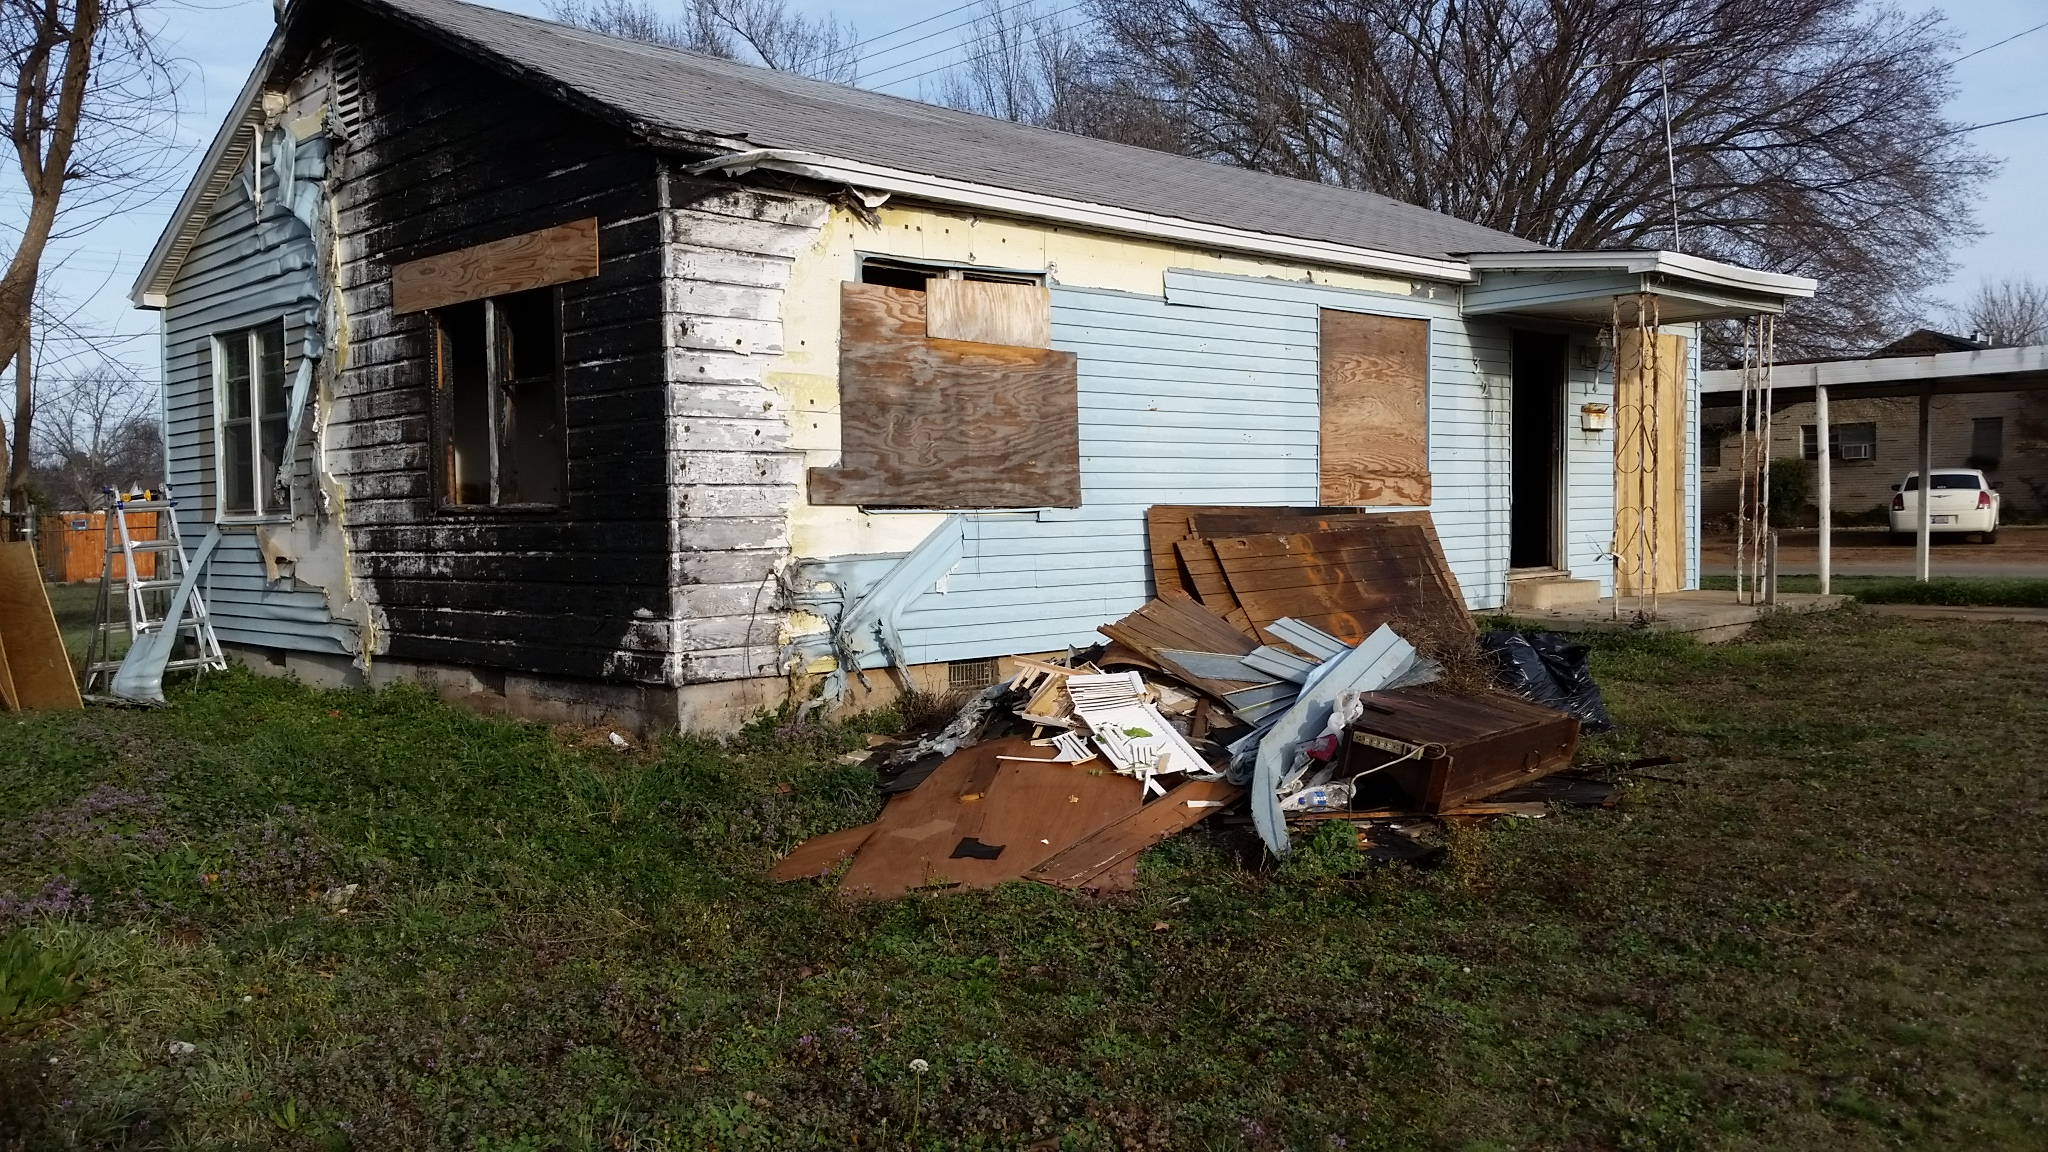 This home in Duncan had caught fire and burned three bedrooms, bath room and hallway.